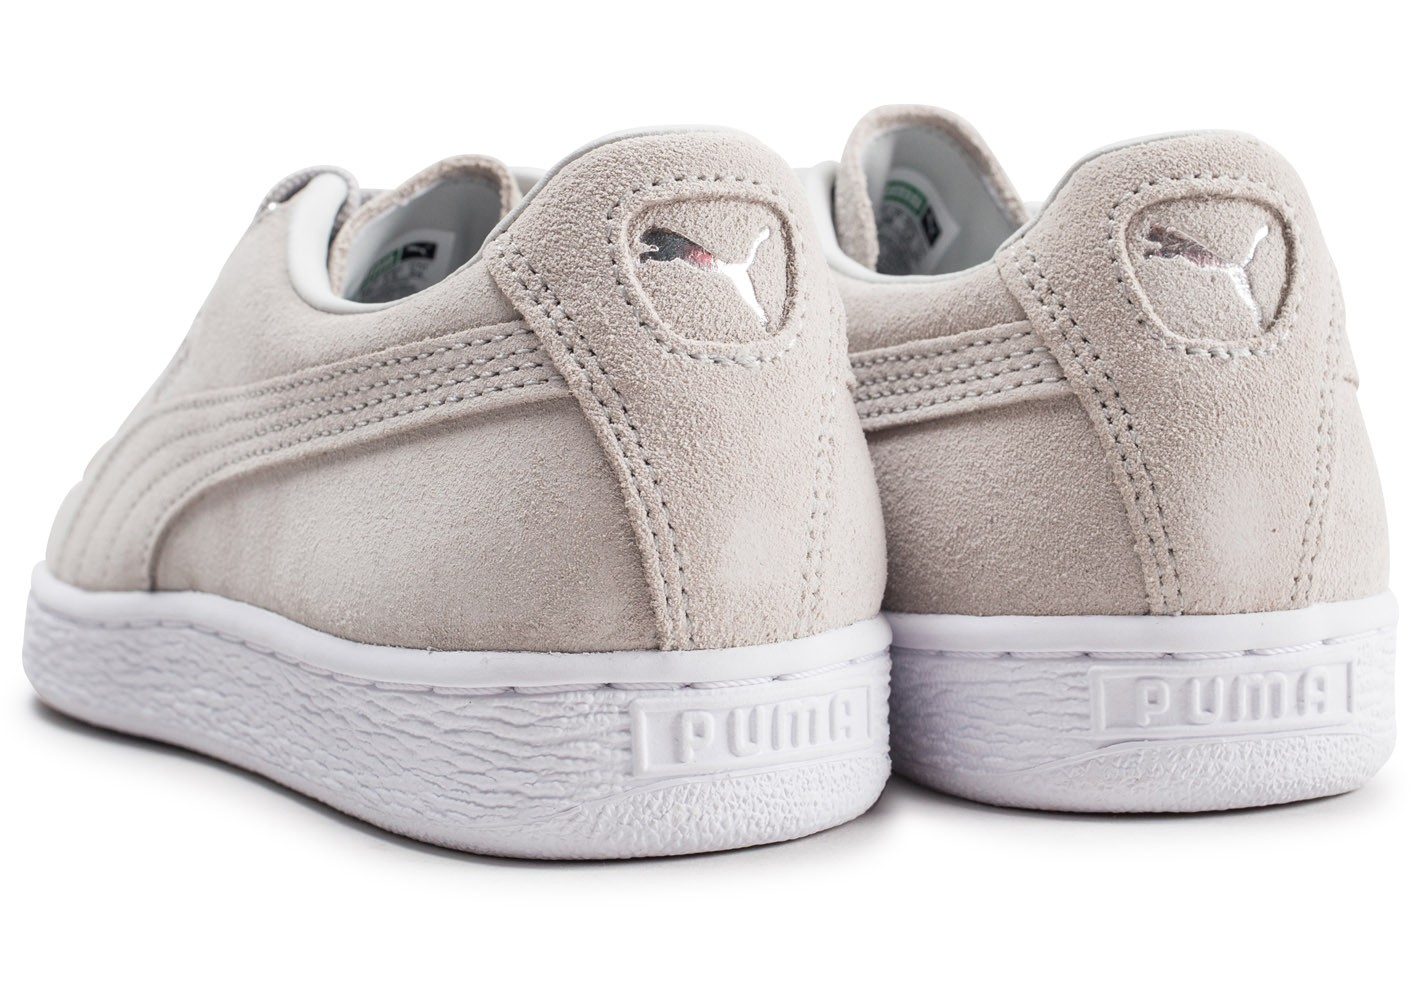 info for ee37f 93be3 Puma Suede Jewel Metallic grise femme - Chaussures Baskets ...